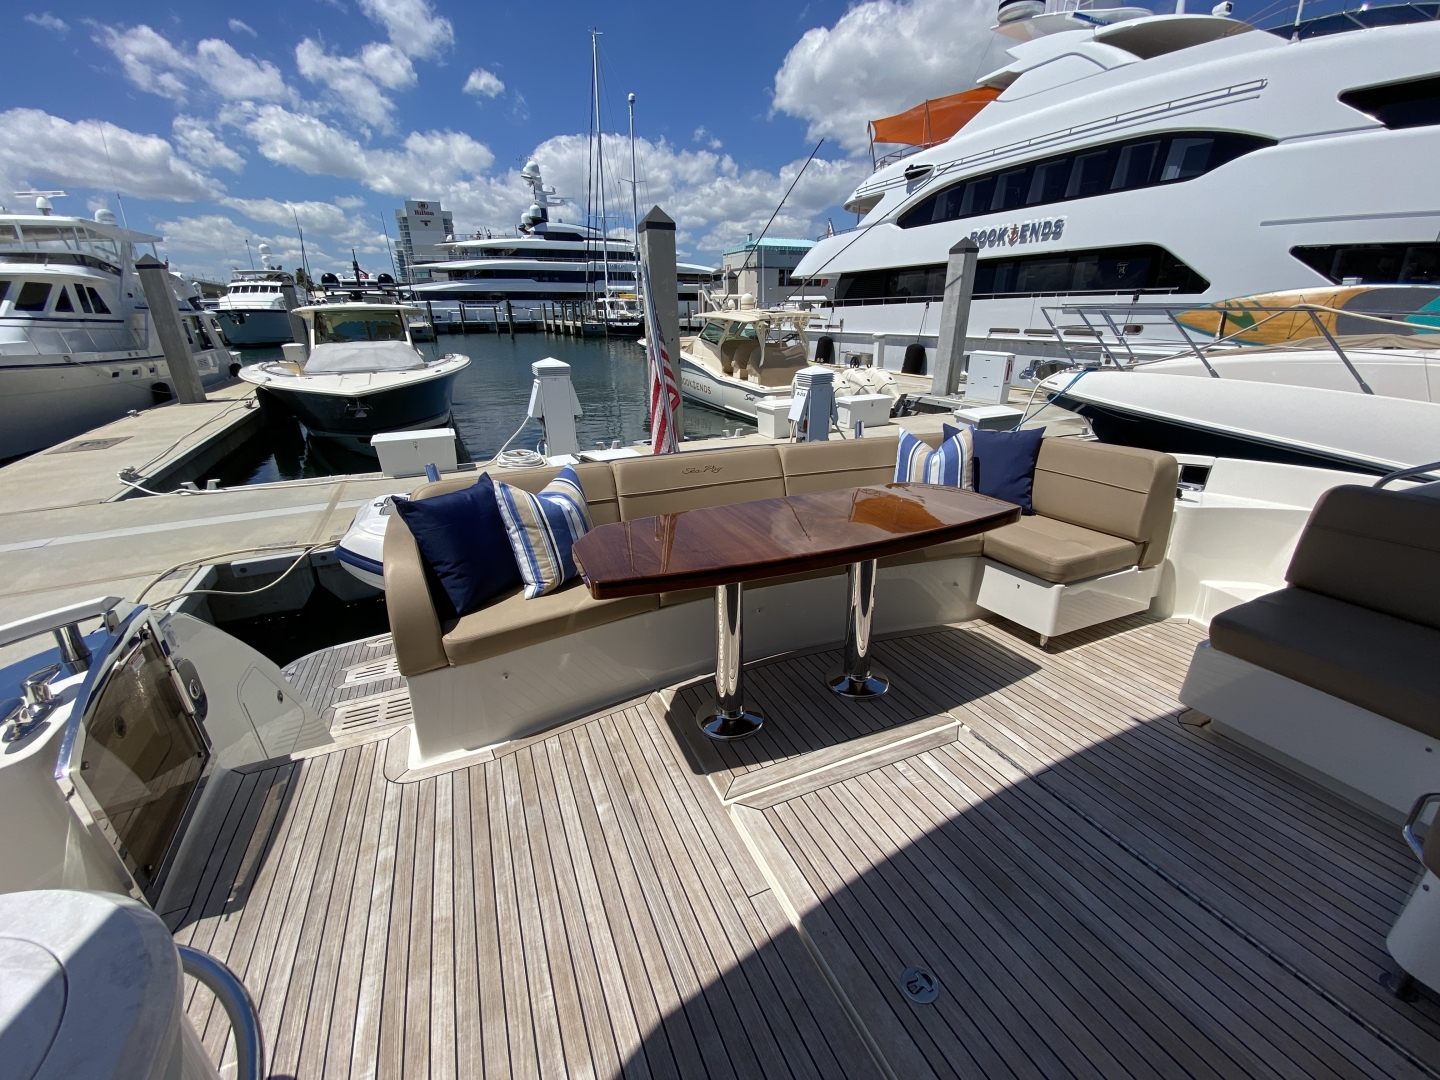 Sea Ray-L650 Express 2016-Cozy Fort Lauderdale-Florida-United States-2016 Sea Ray L650 Cozy   Cockpit-1372393 | Thumbnail